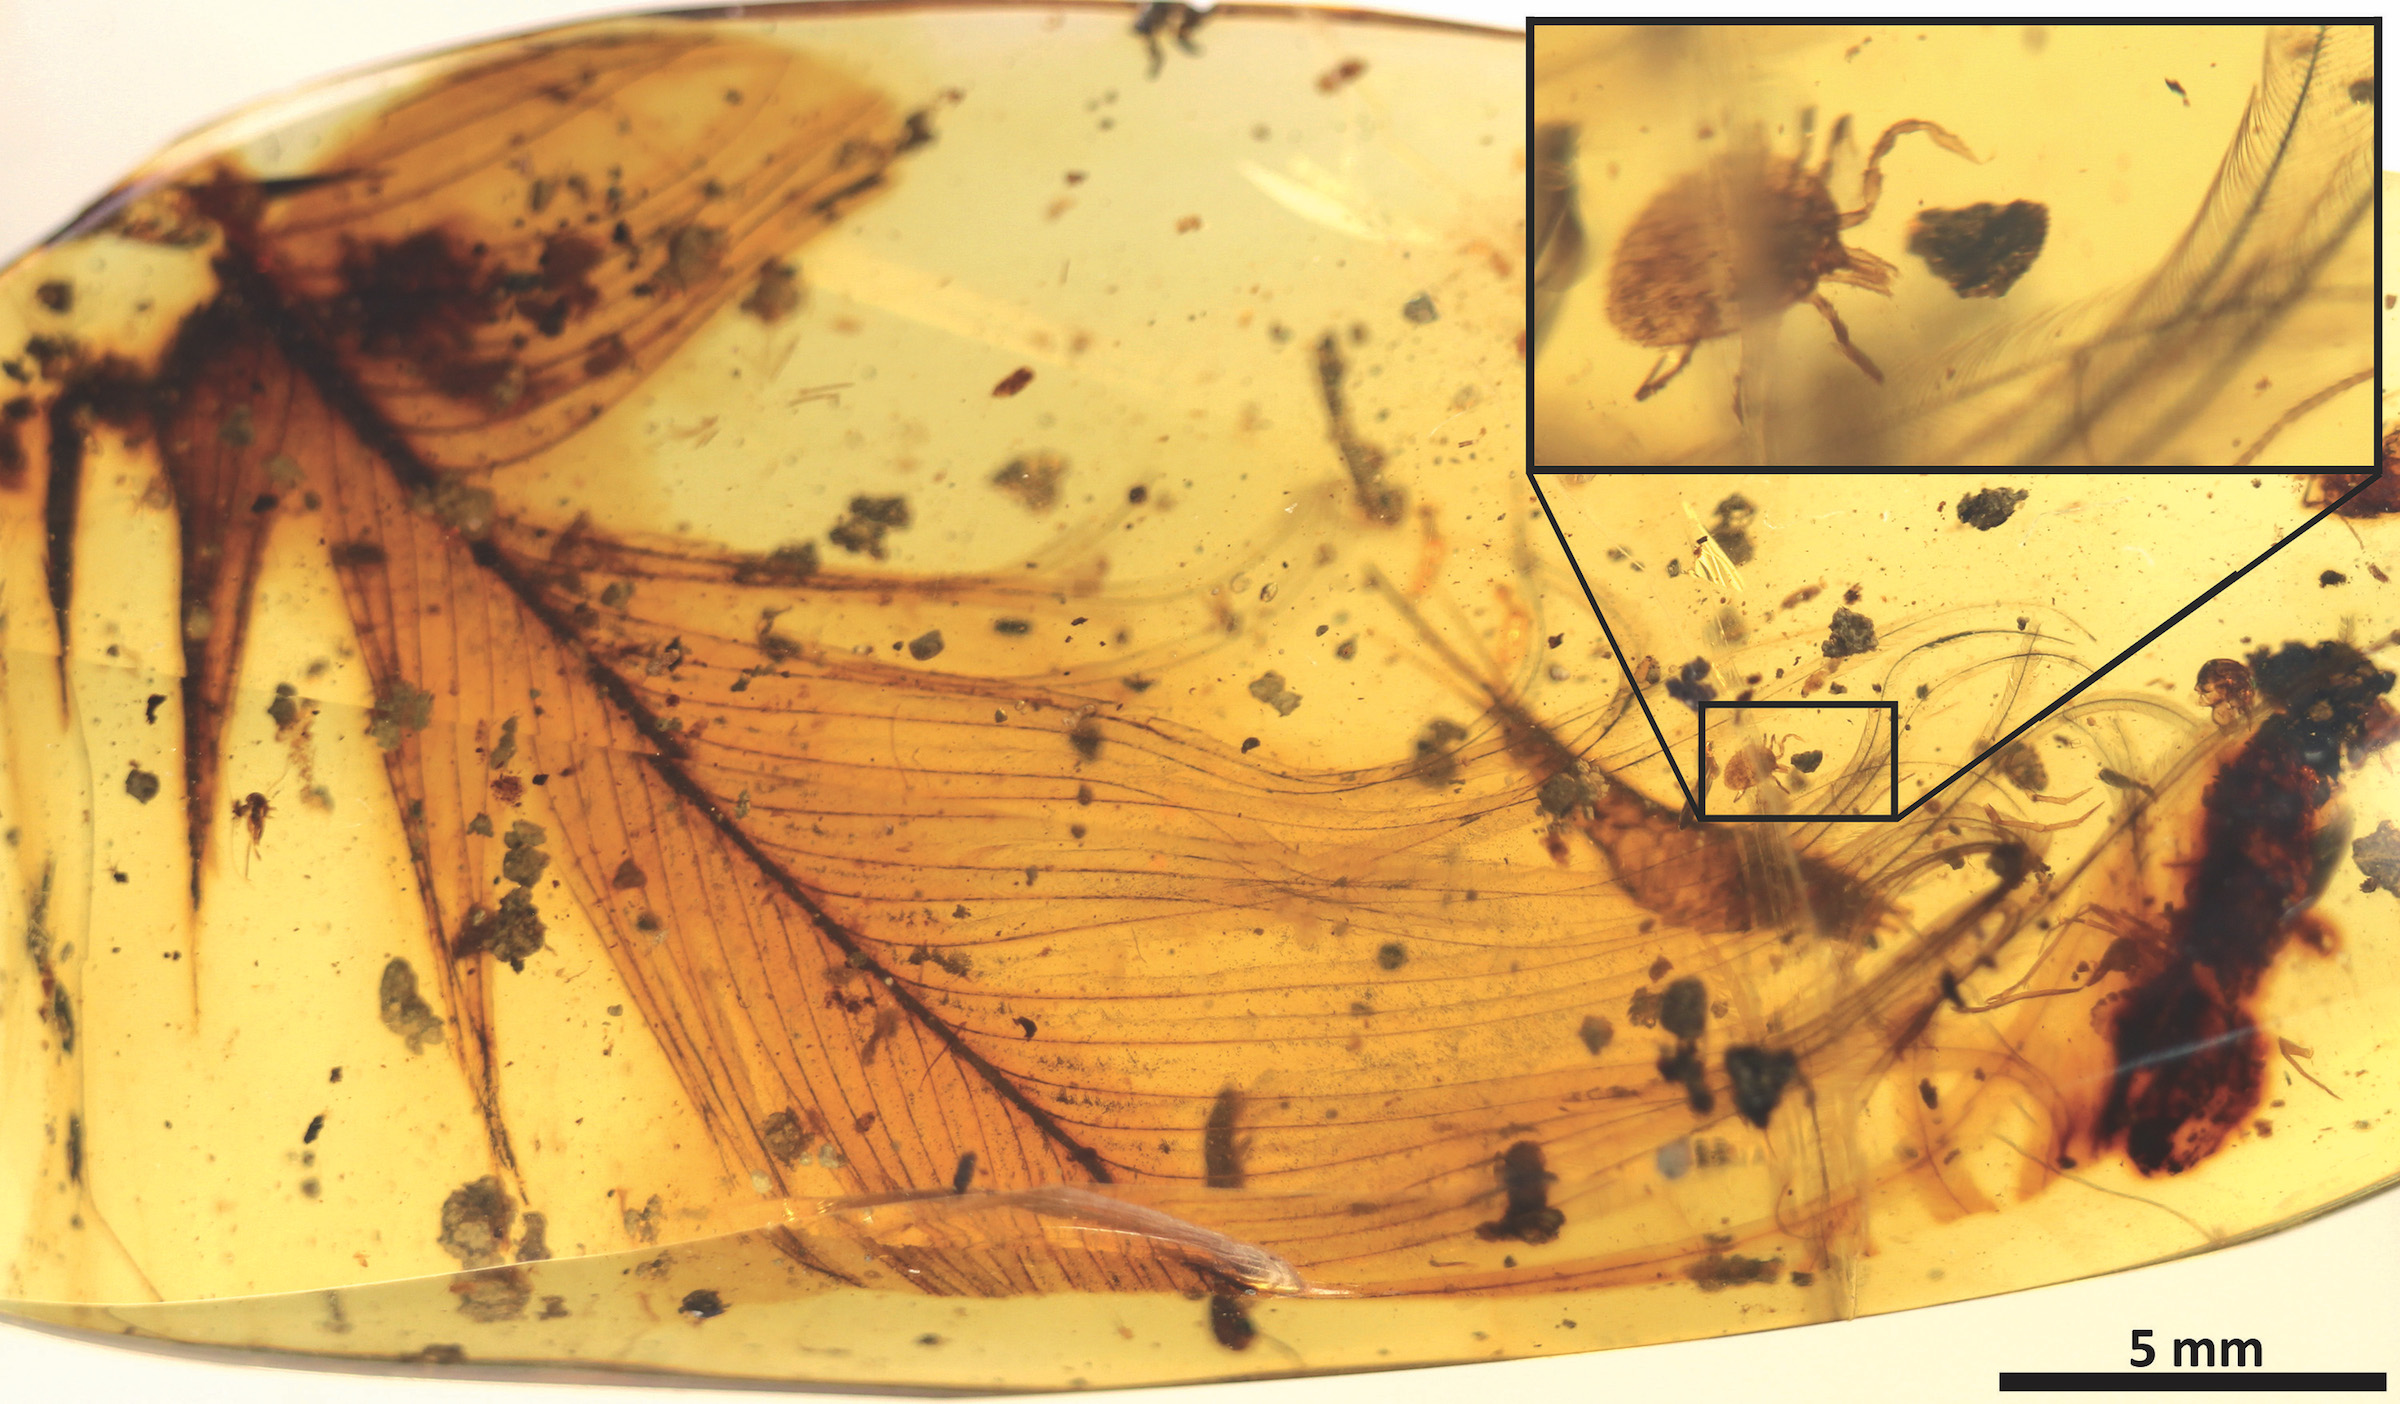 A new report examines ticks trapped in amber that reveals how these blood-sucking parasites thrived as far back as the Cretaceous period.